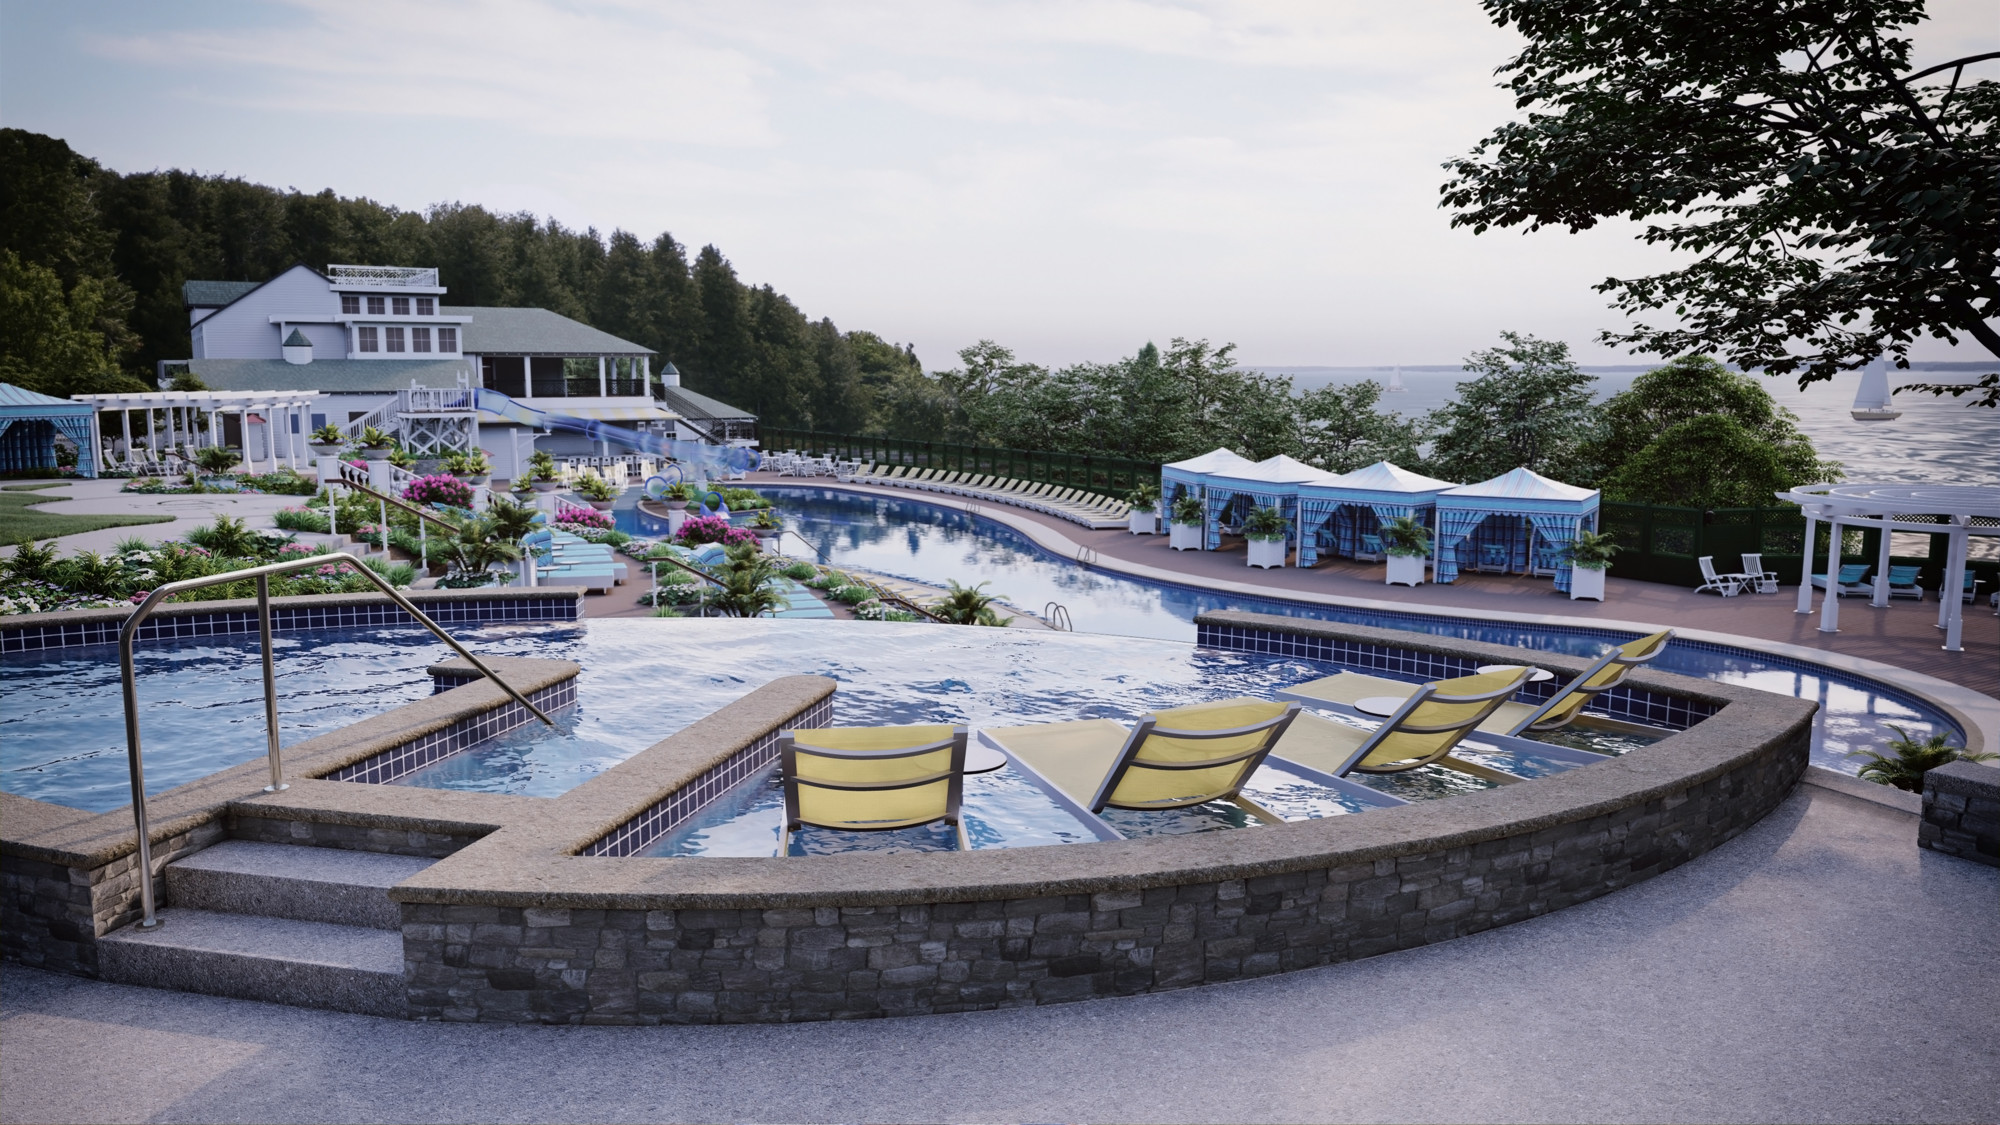 Image of the new pool area at Grand Hotel in Mackinac Island.